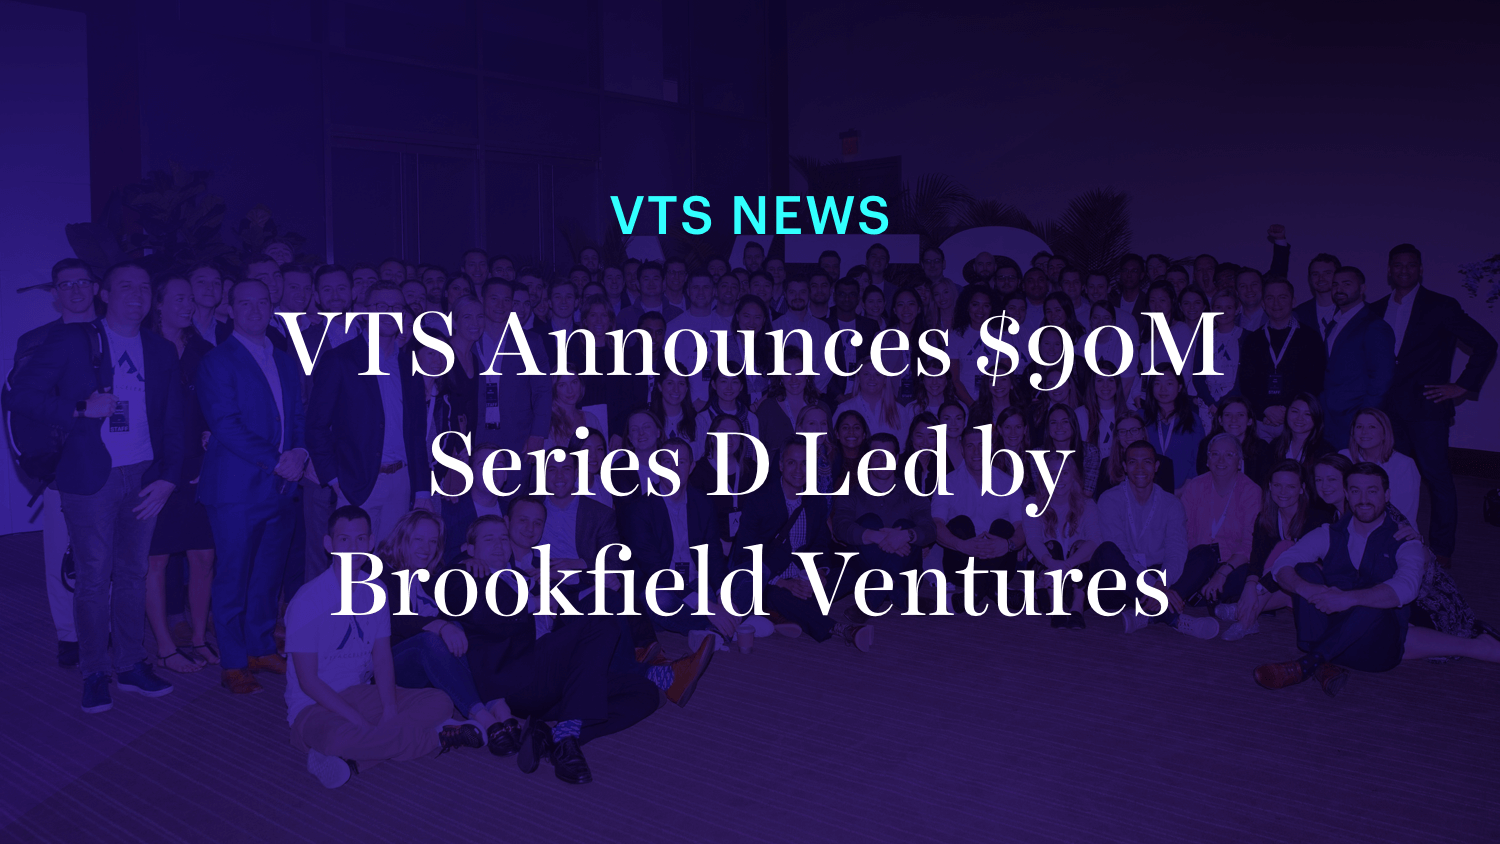 VTS Announces $90M Series D Led By Brookfield Ventures - The Largest Software Round in CRE History